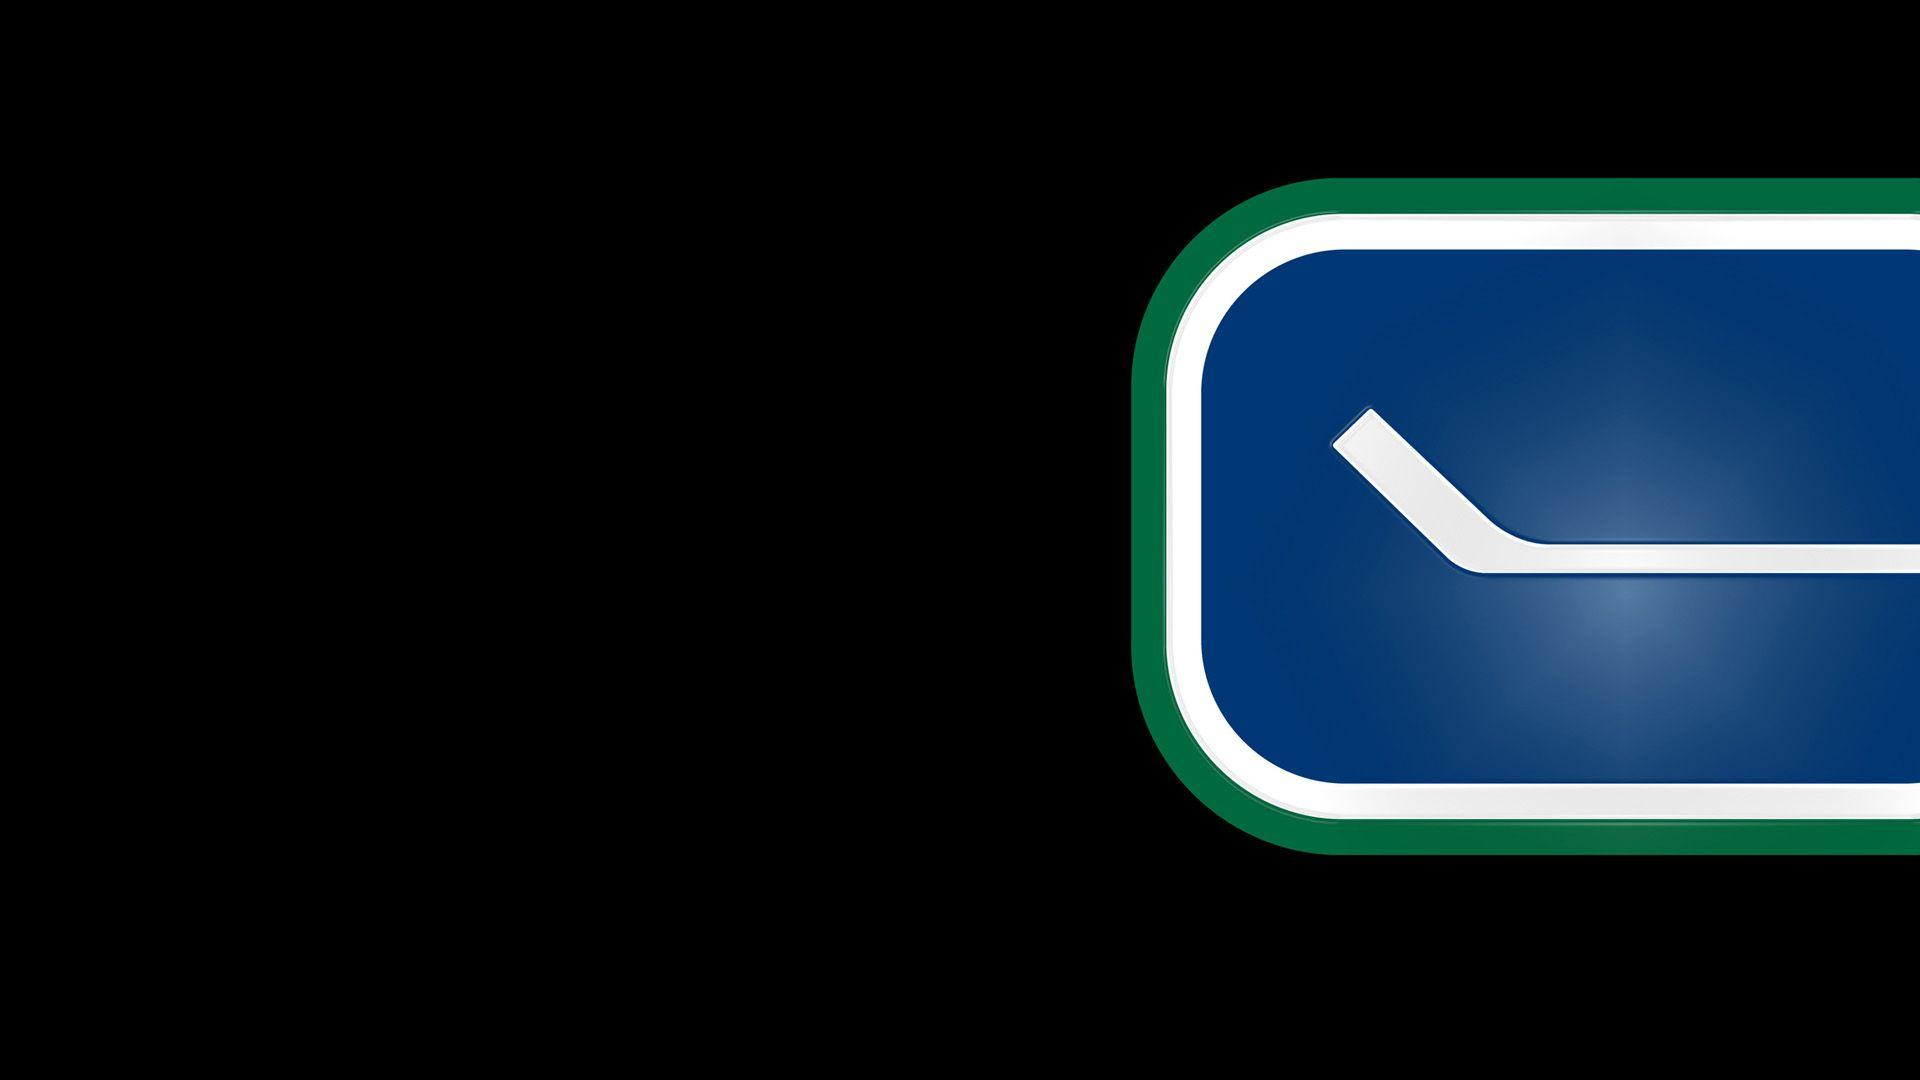 Vancouver Canucks Logo Wallpapers 1920x1080